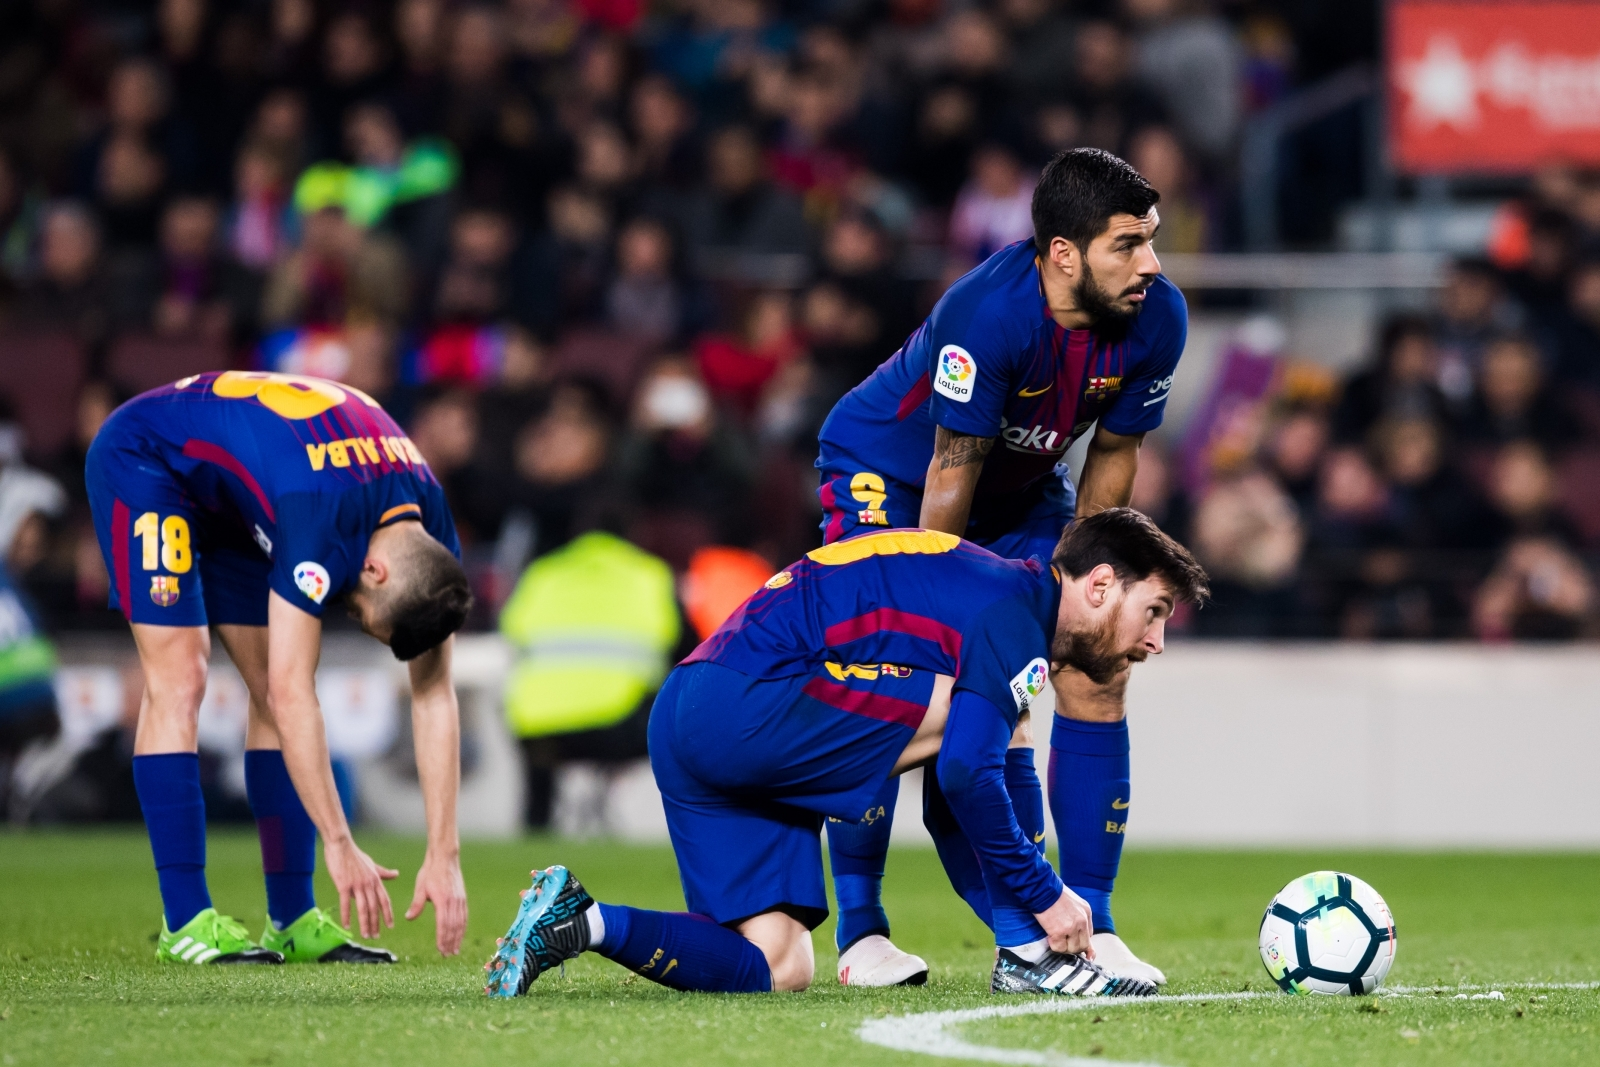 Lionel Messi nets his 600th career goal with magical free-kick